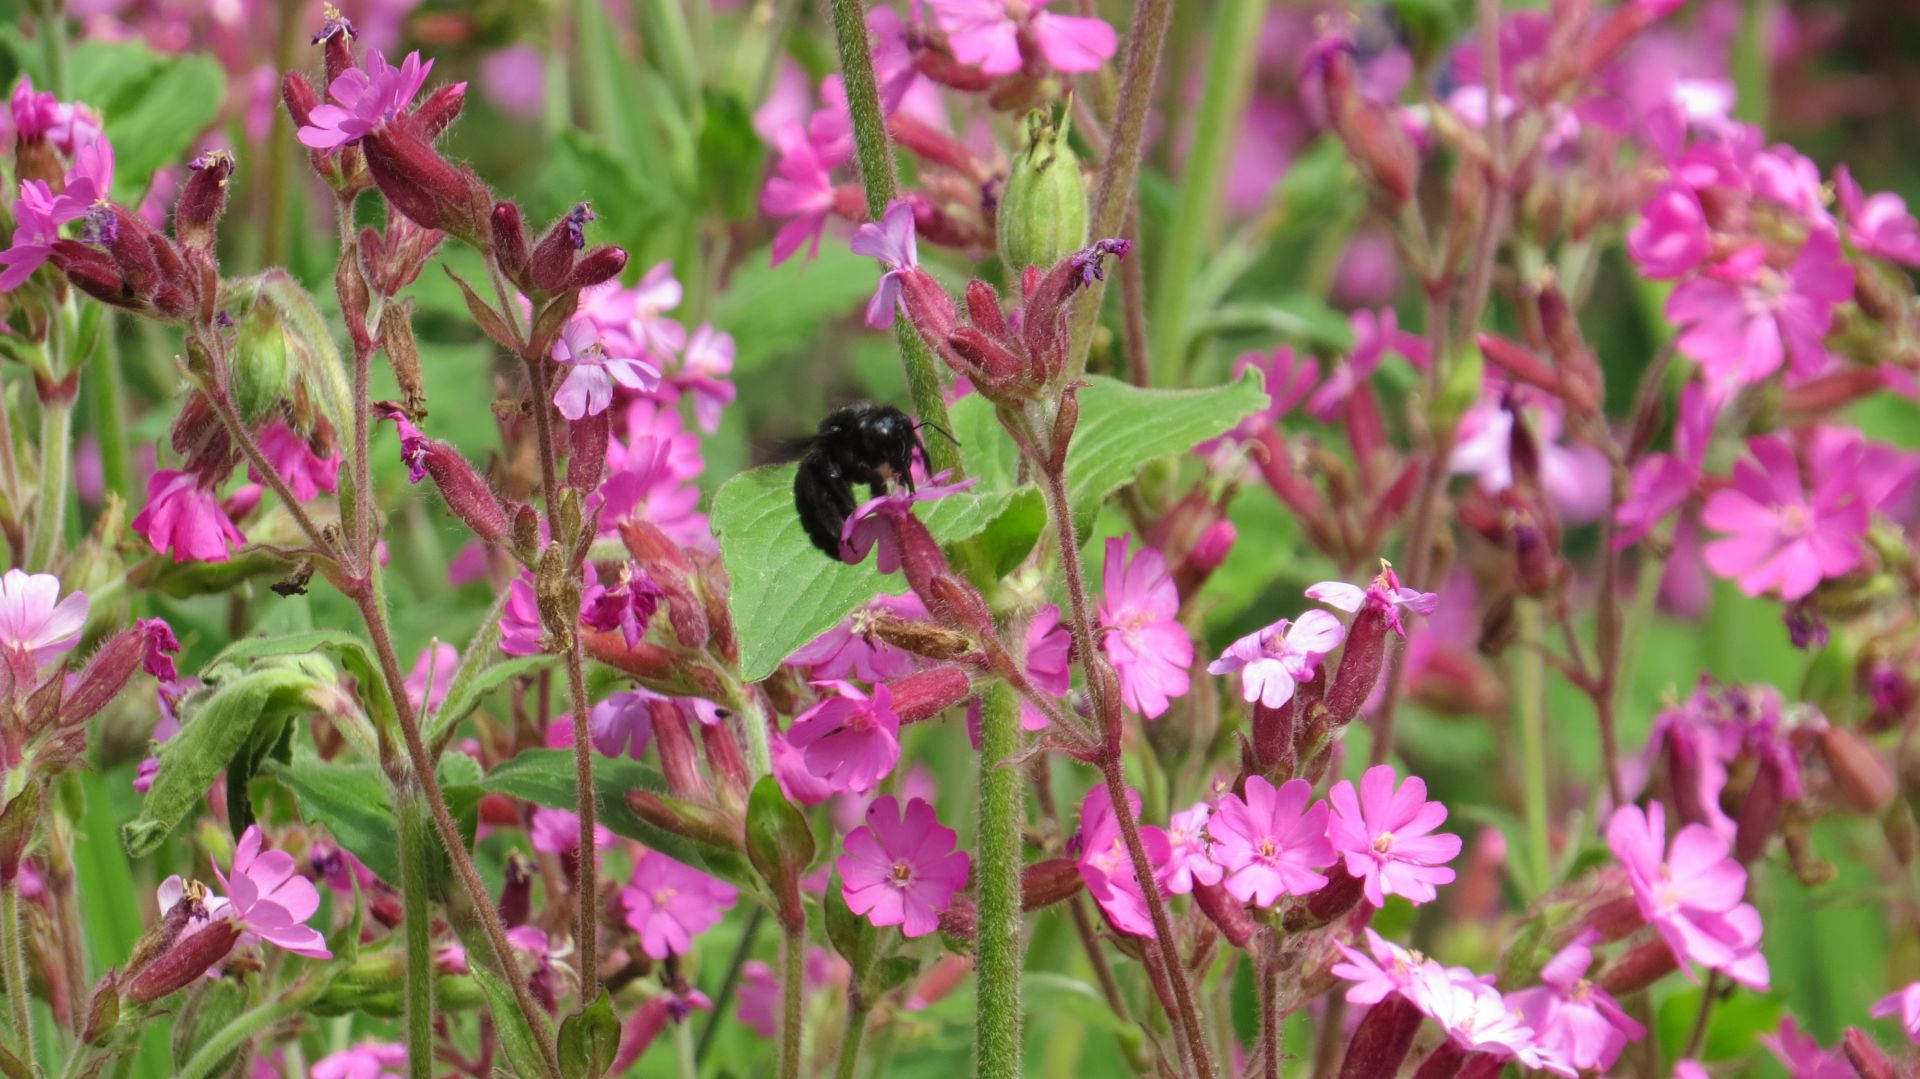 Pollinators monitoring in the garden